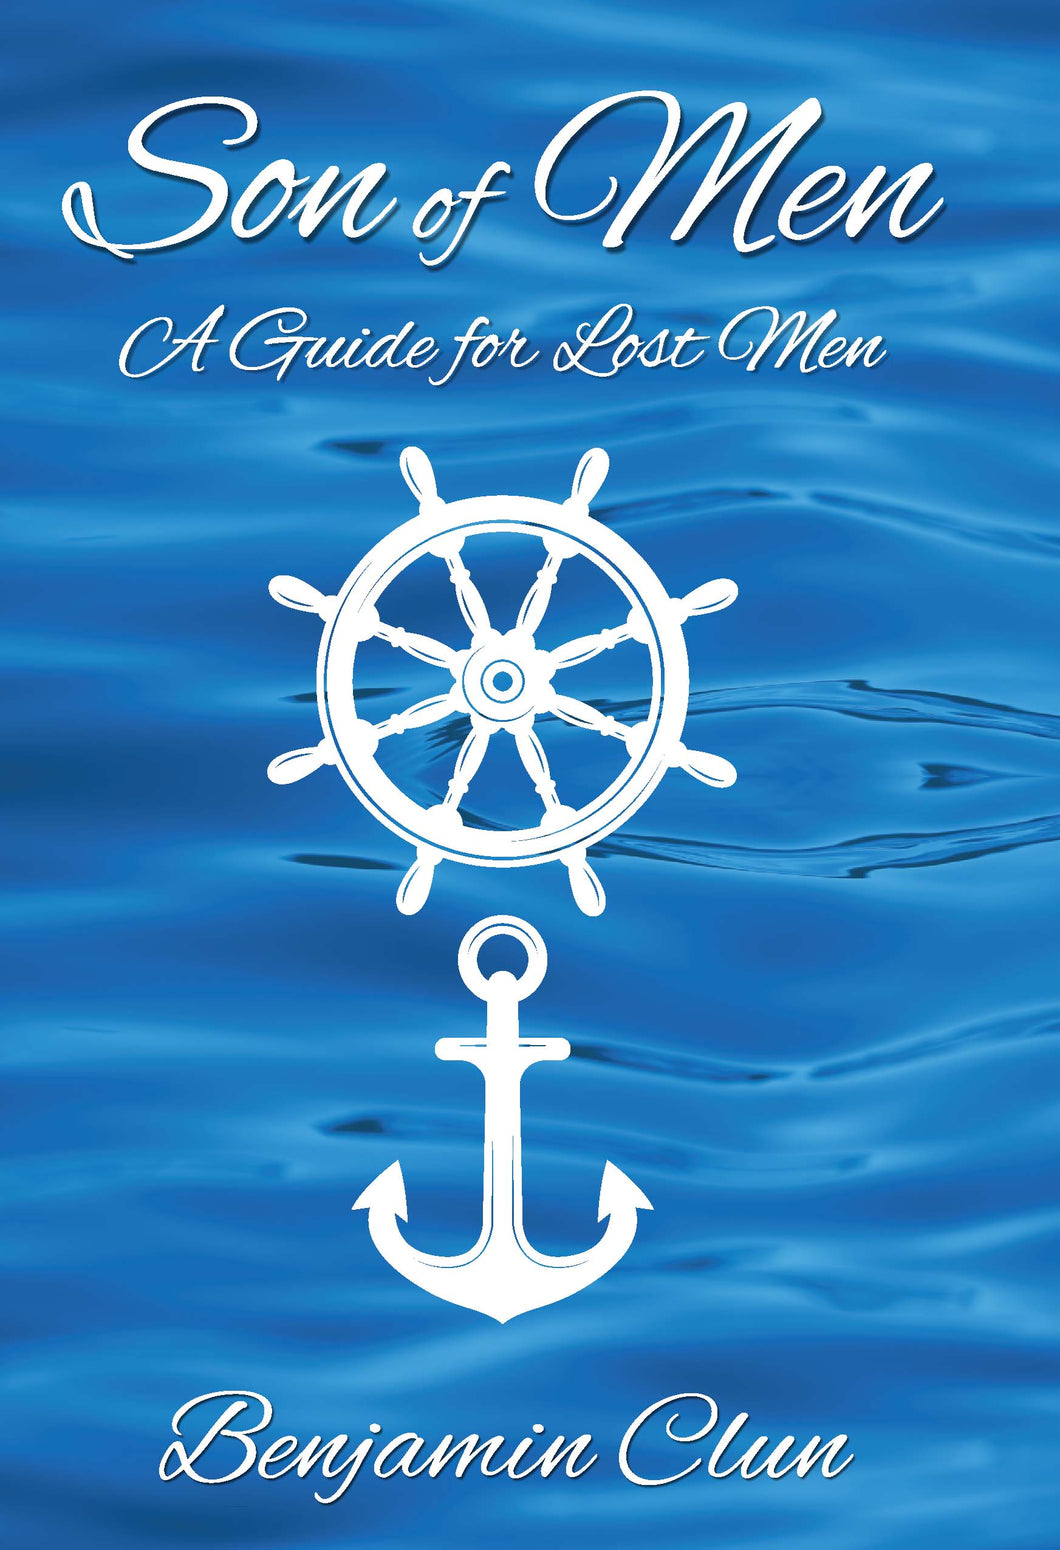 Son of Men: A guide for lost men